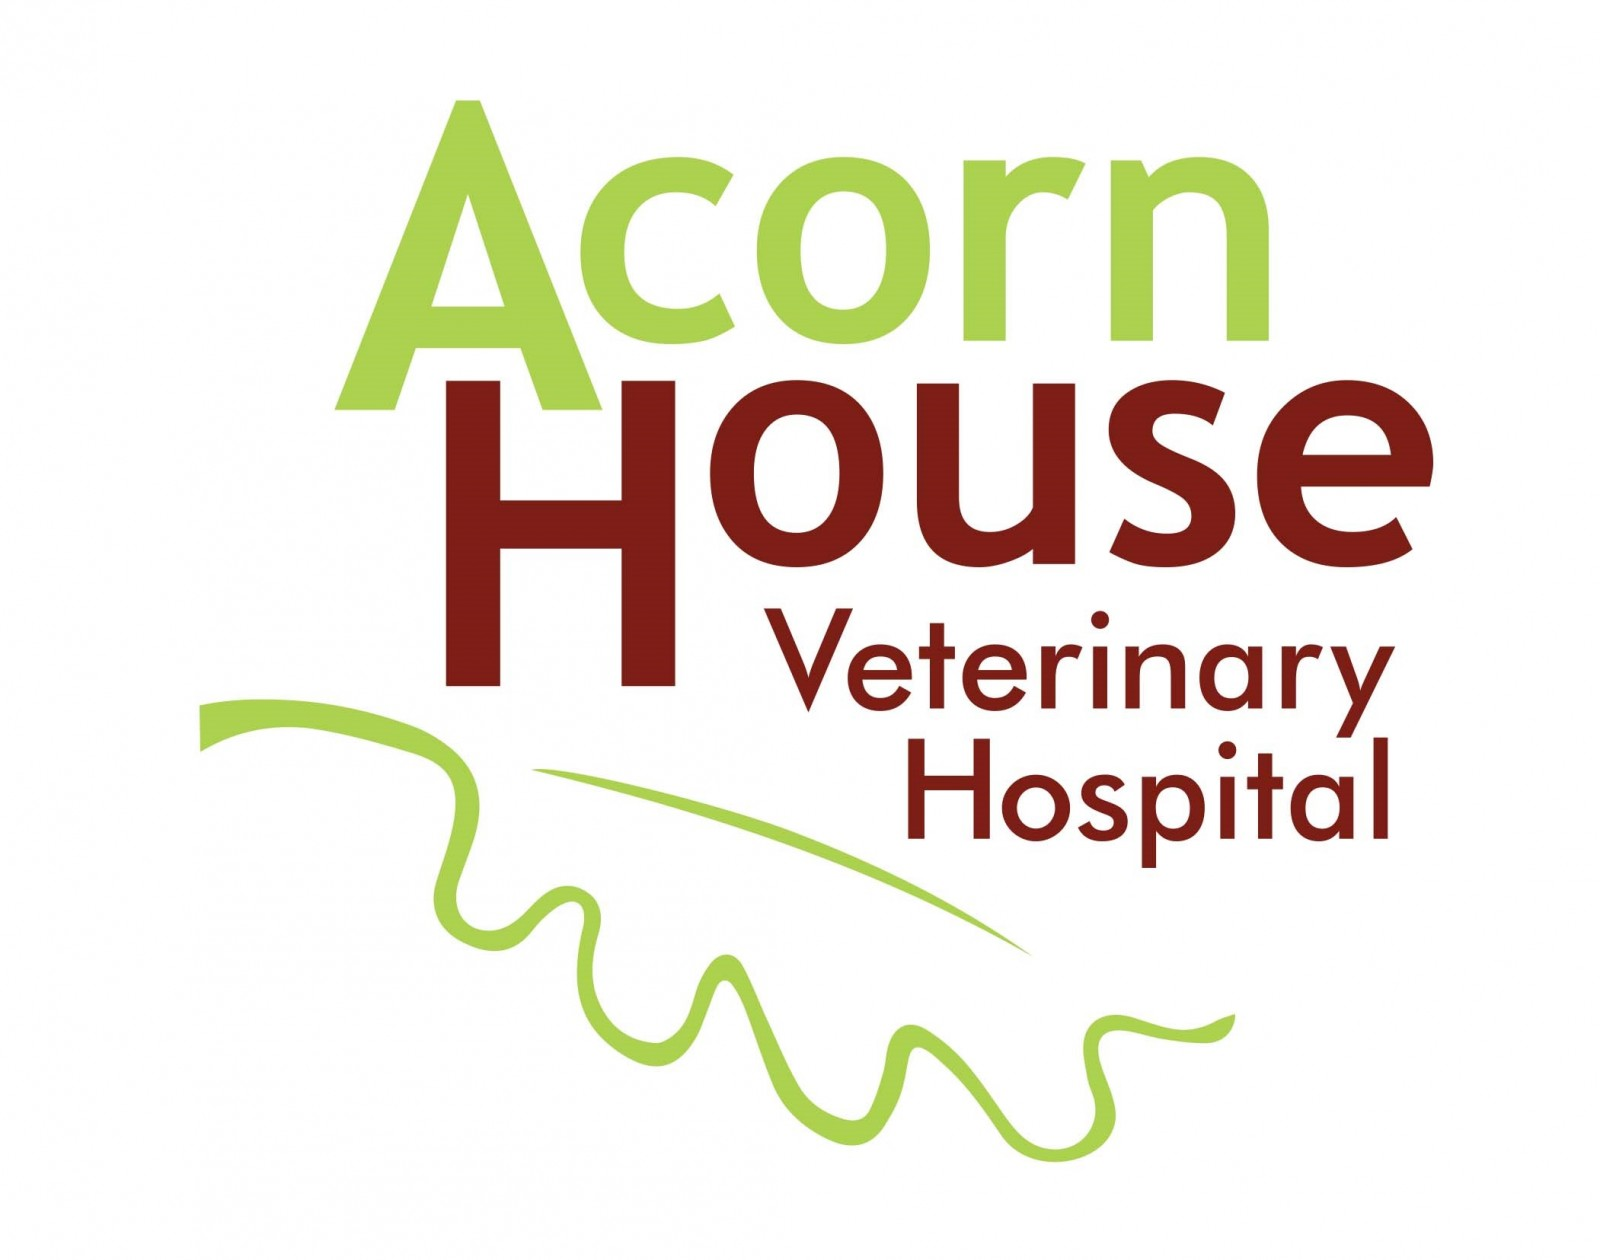 Acorn House Veterinary Hospital